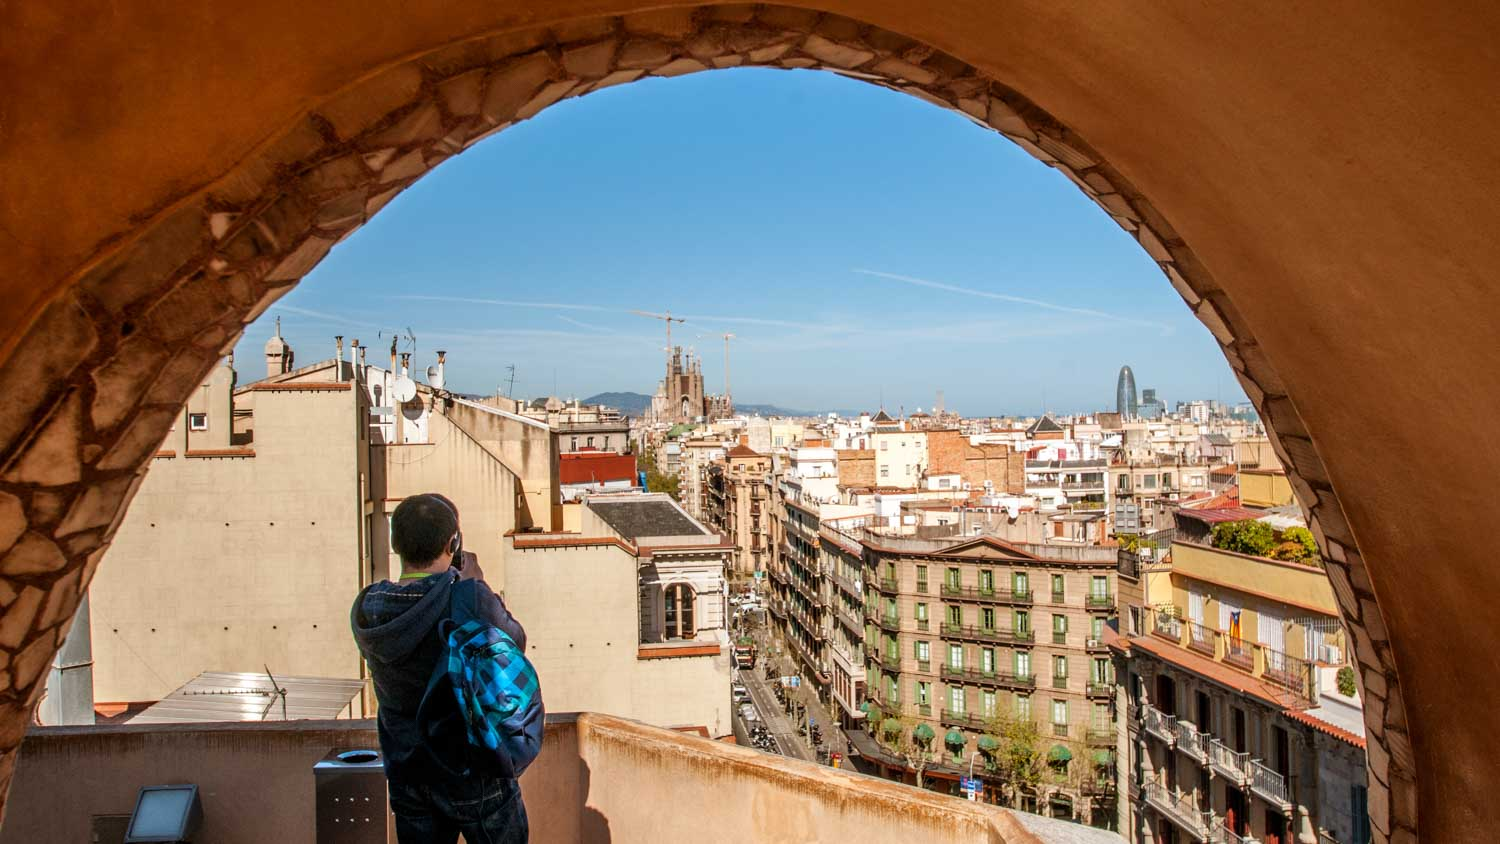 Visitors can see the Sagrada Família from the roof